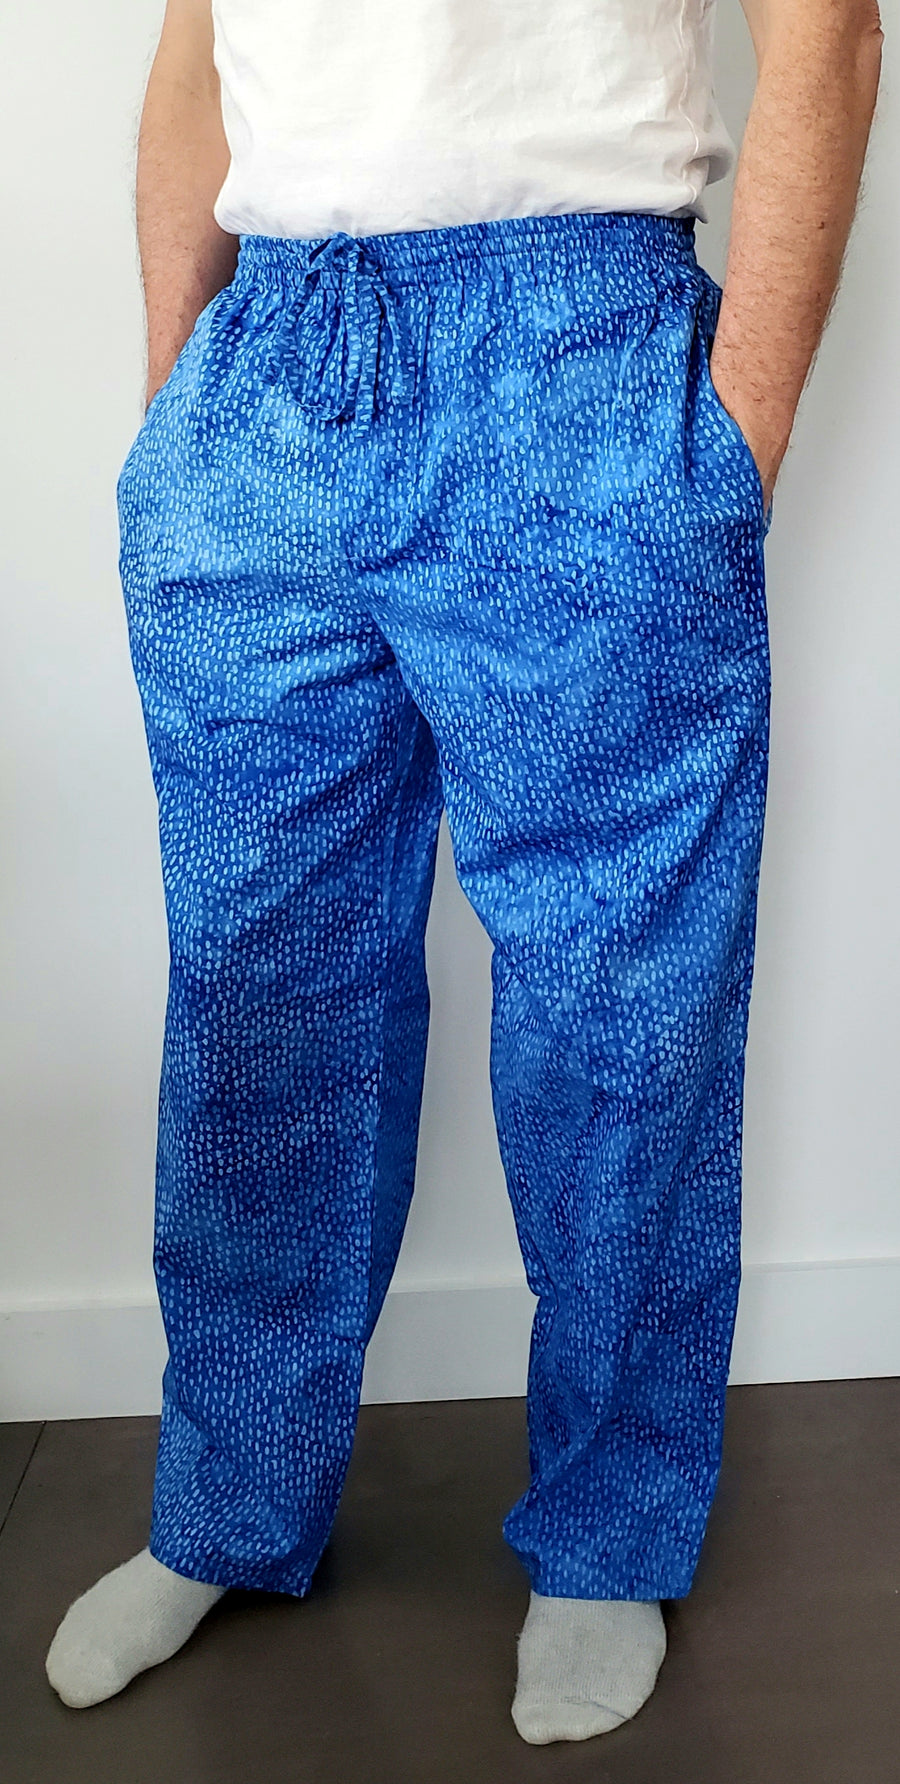 Mens House Pants in Royal Dots